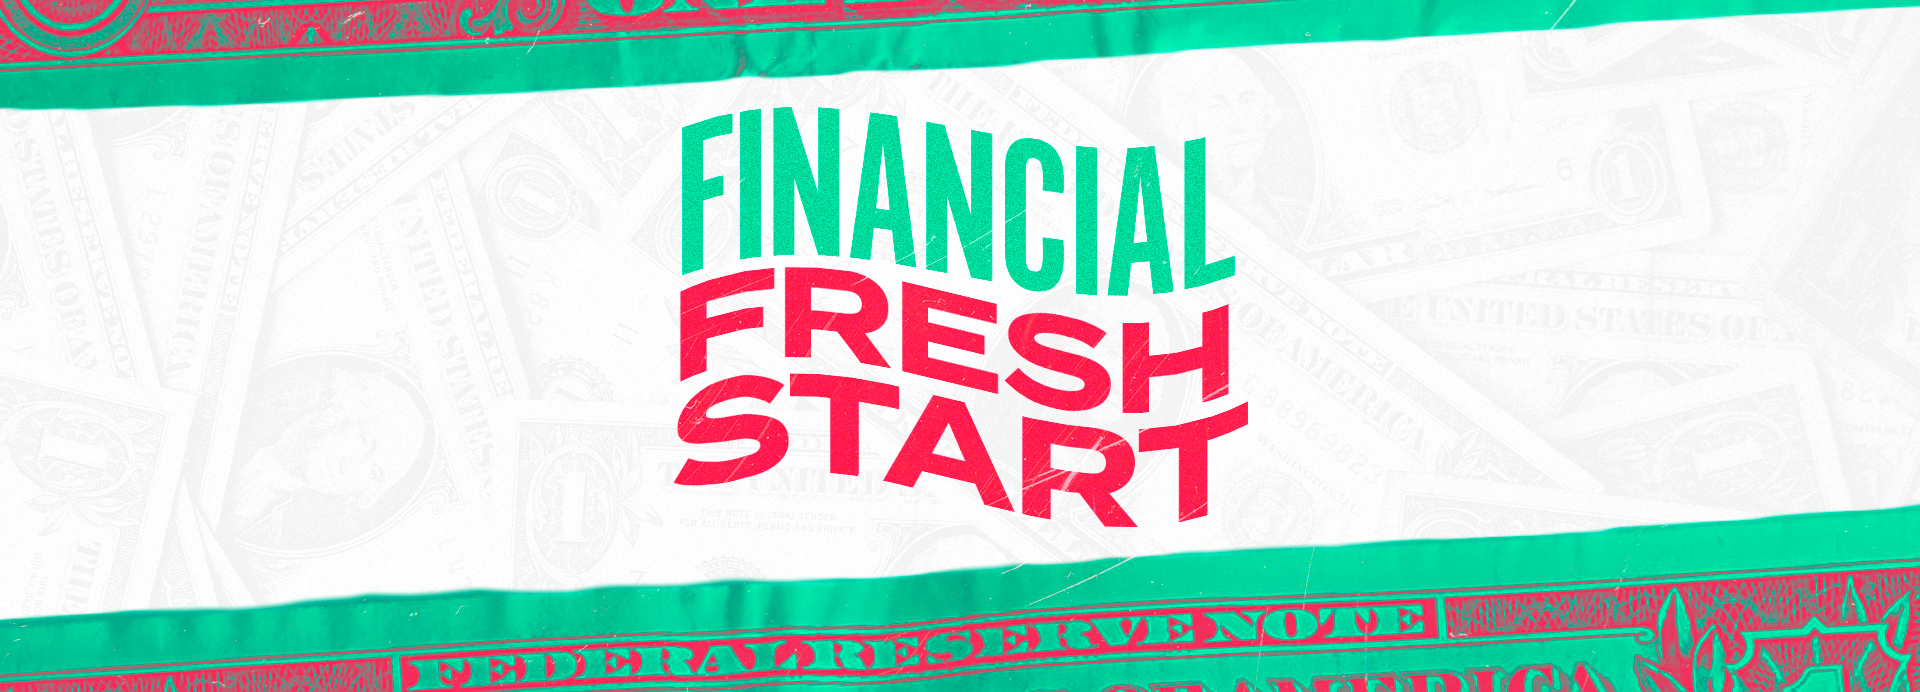 Financial Fresh Start | Get Out And Store Up